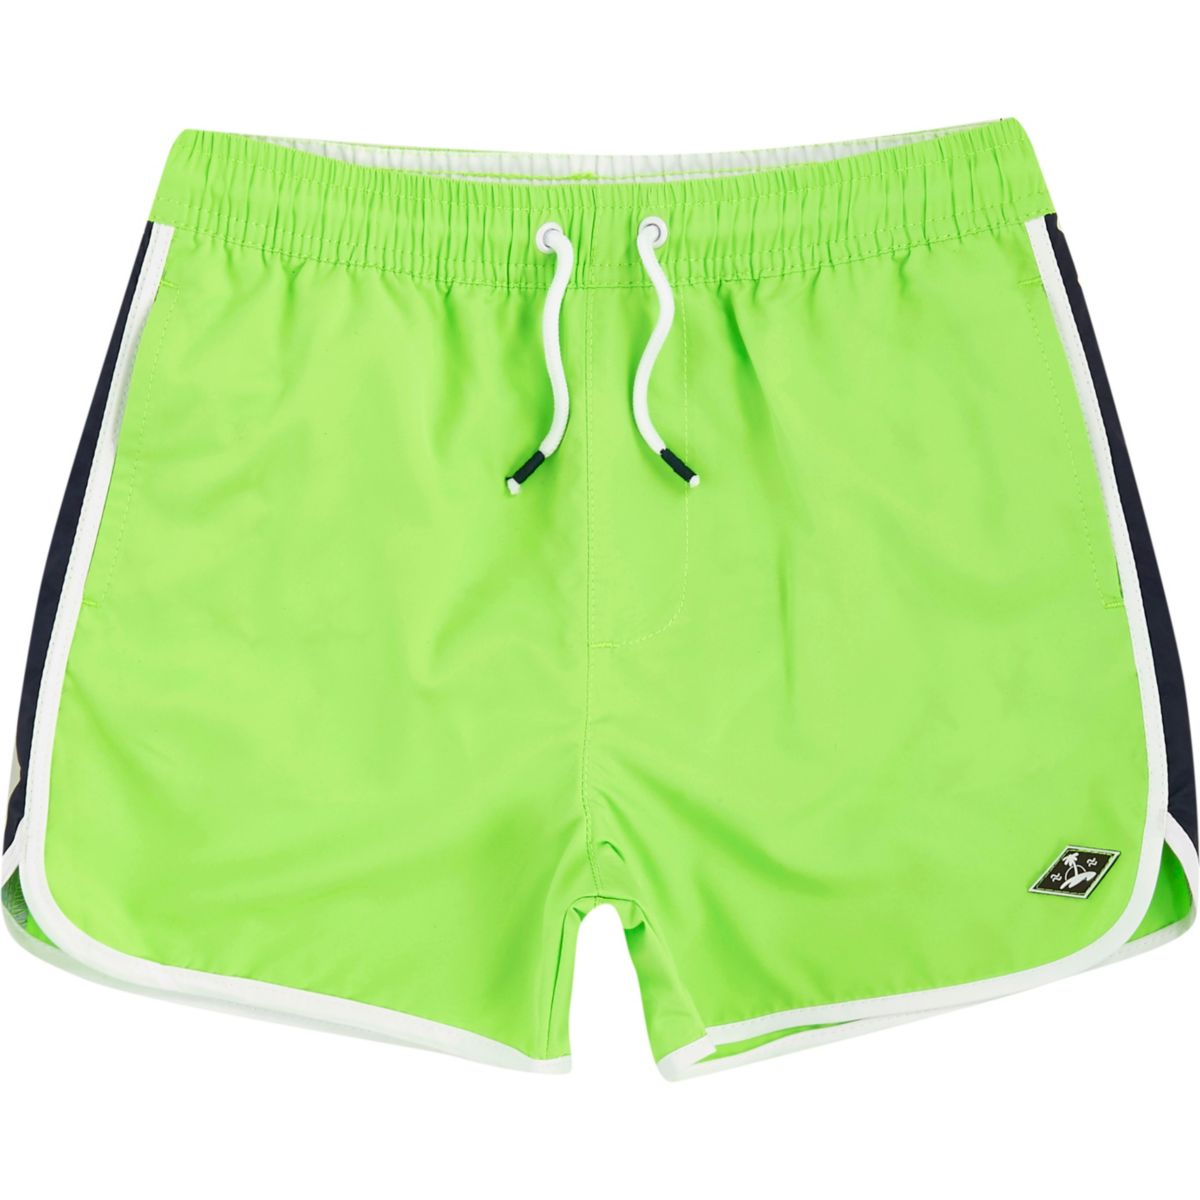 Boys bright green runner swim shorts